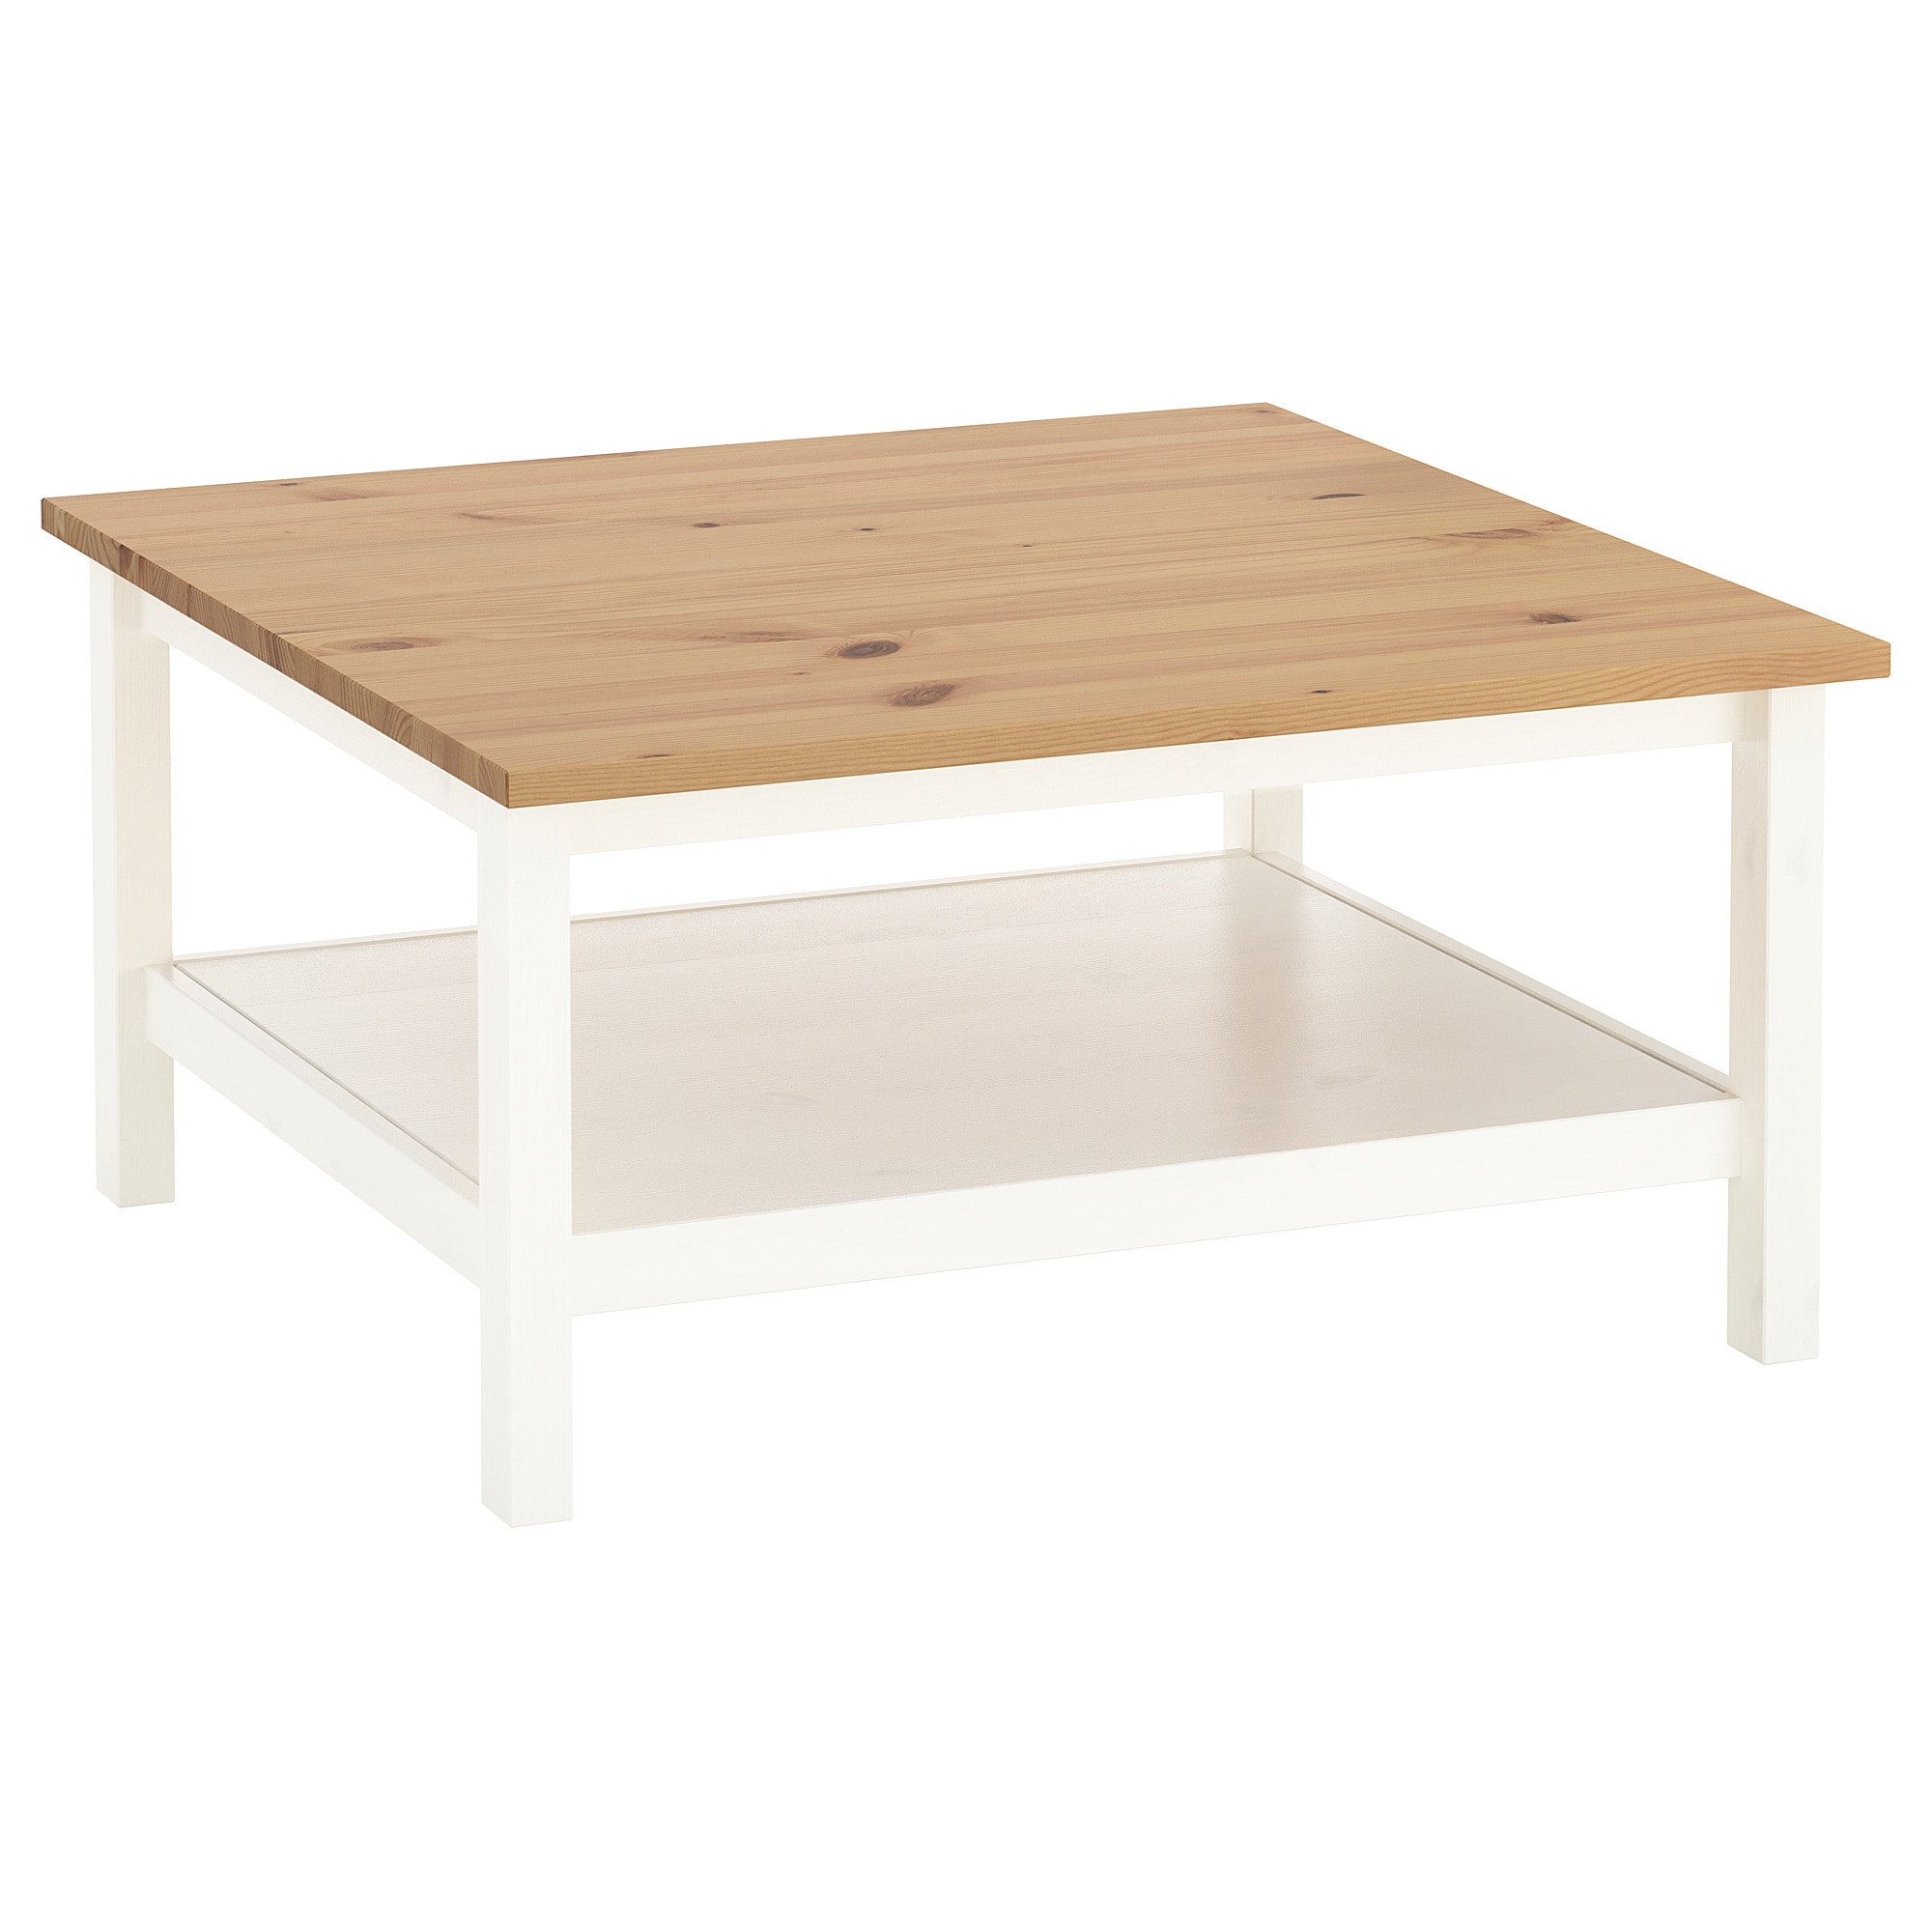 Fashionable Light Natural Coffee Tables With Regard To Hemnes Coffee Table White Stain/light Brown 90 X 90 Cm – Ikea (View 6 of 20)